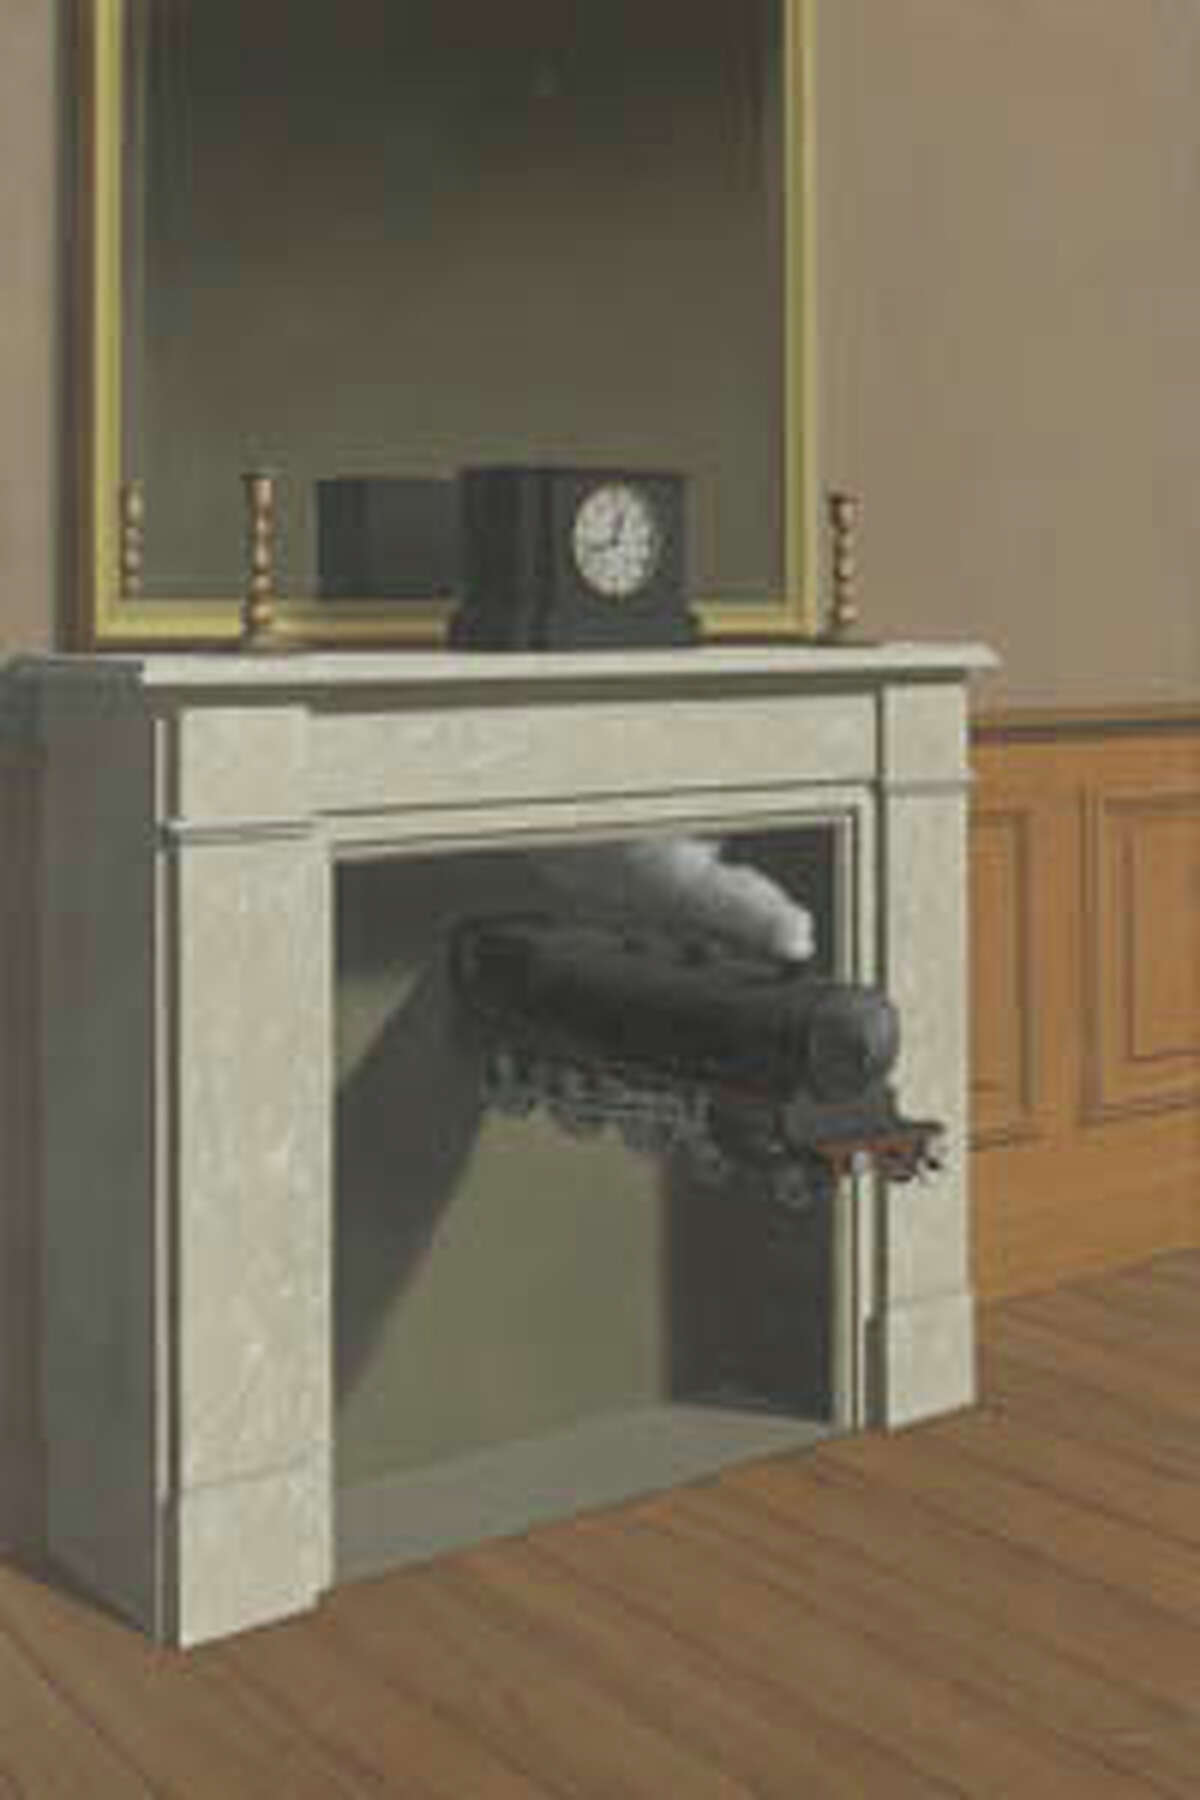 """Rene Magritte's """"La Durée poignardée,"""" also known as """"Time Transfixed."""""""